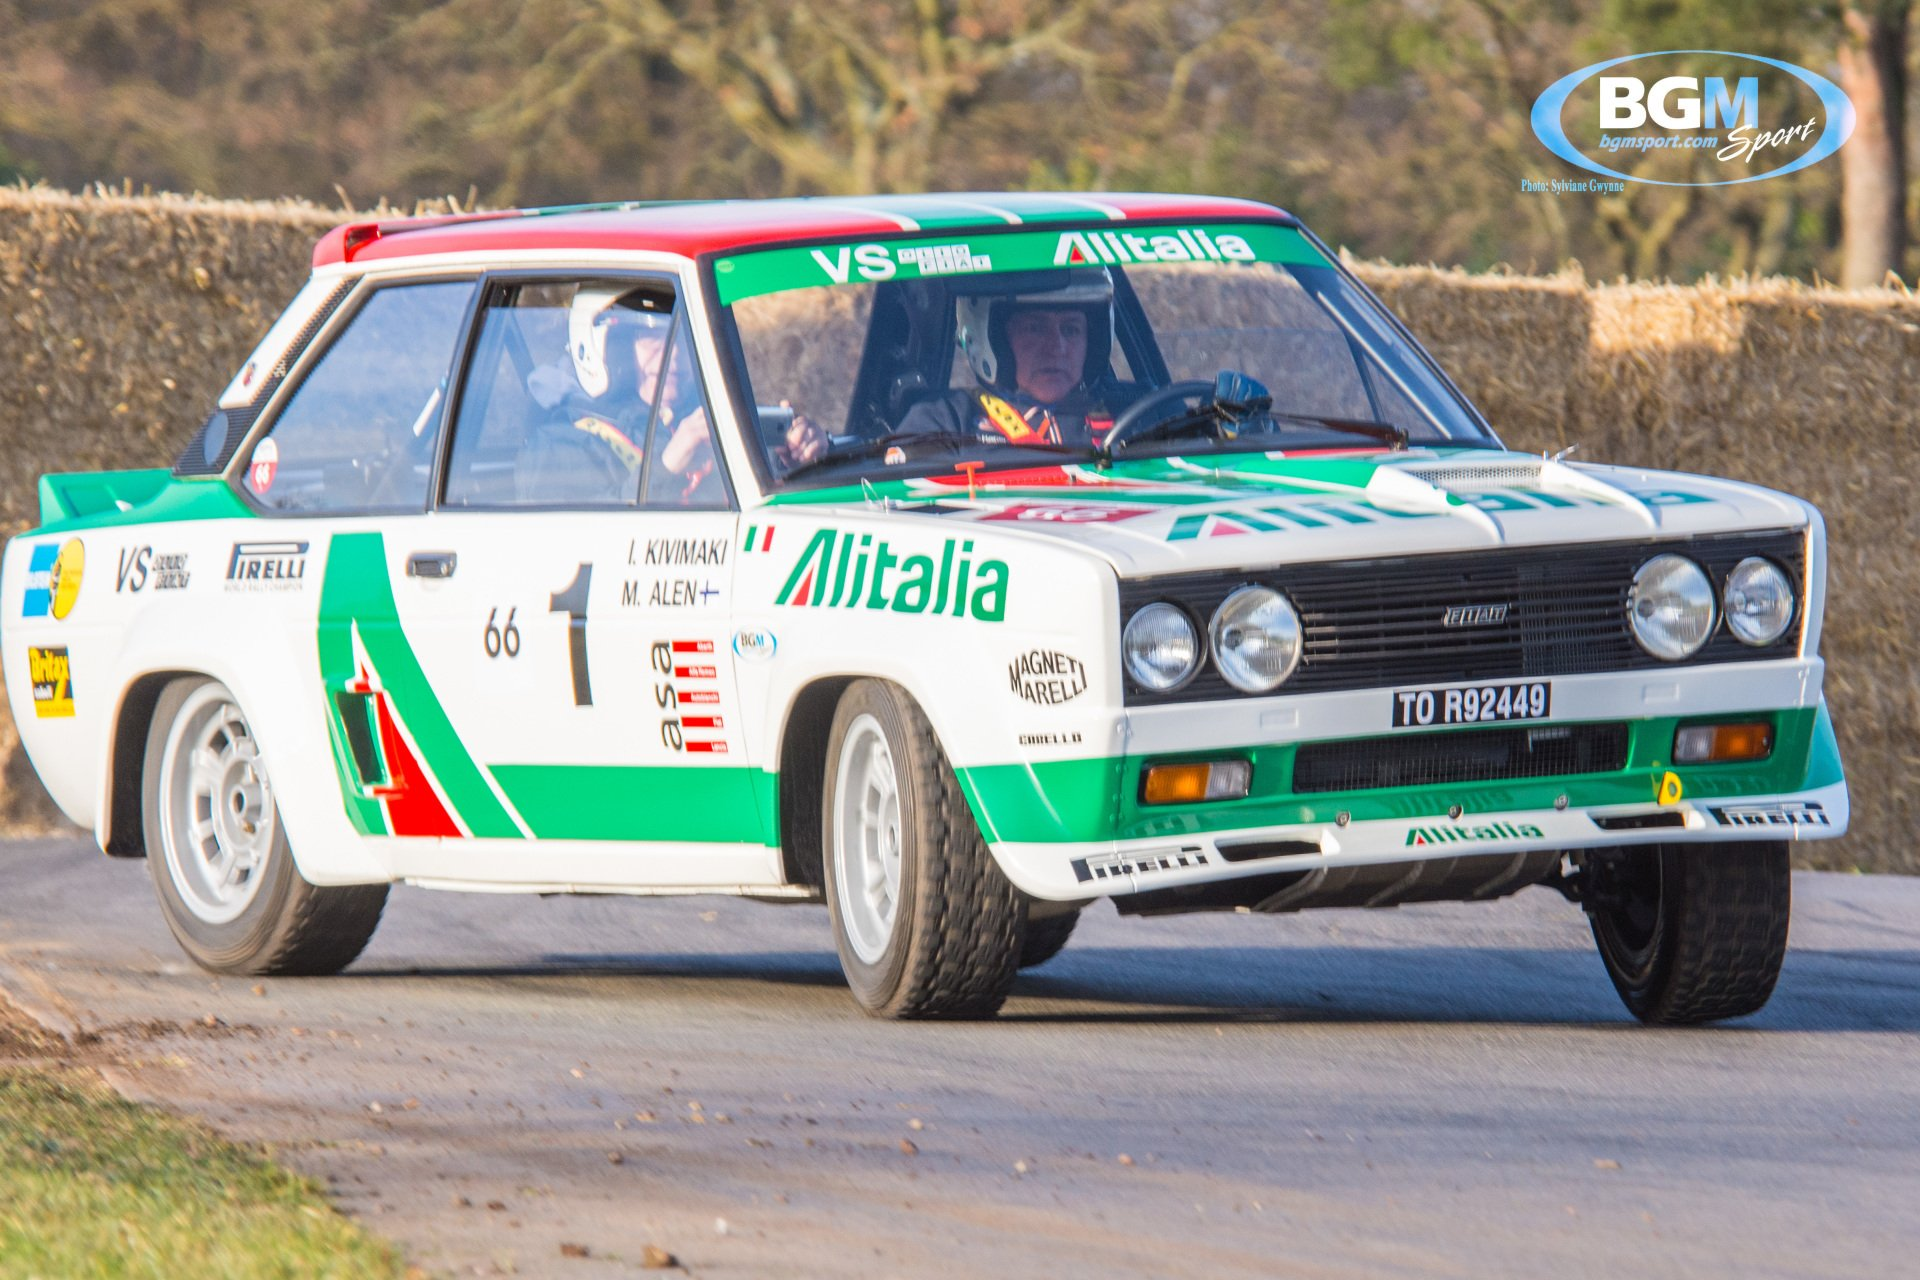 fiat-131-abarth-grp-4-rally-car-46